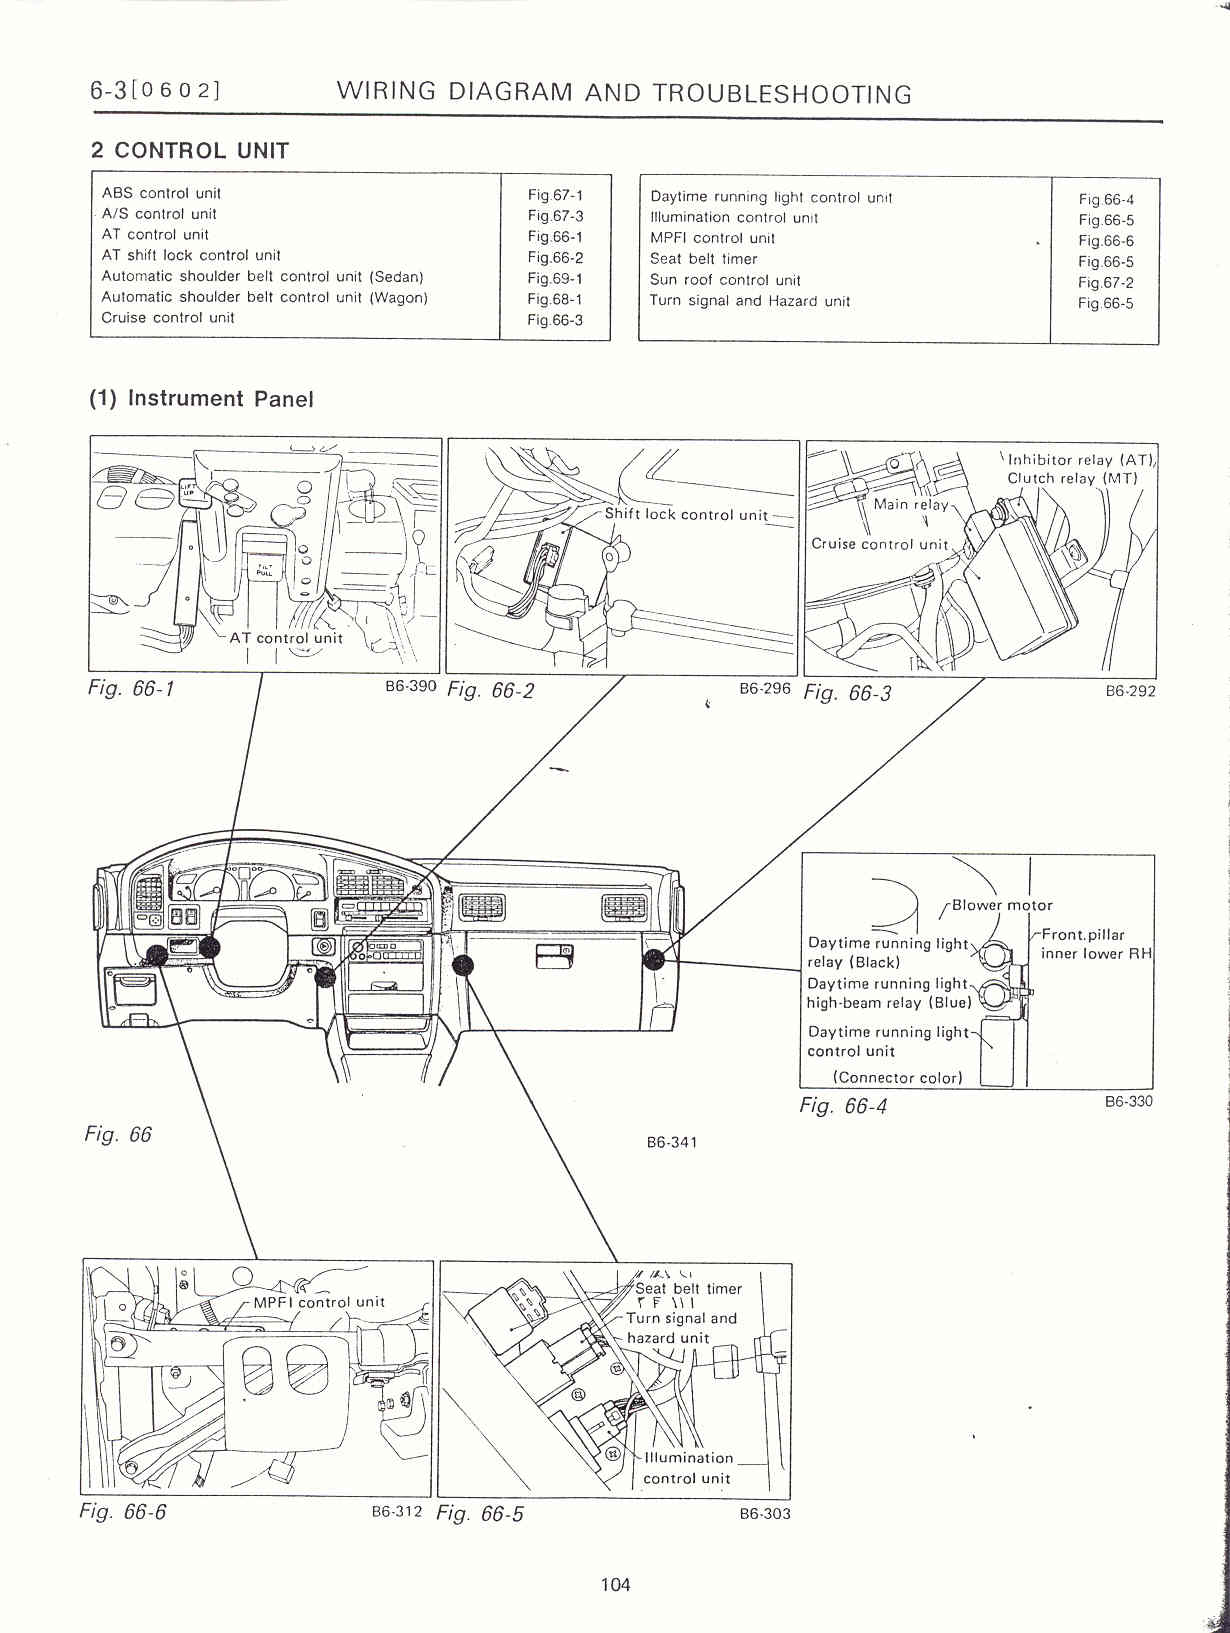 subaru 4eat 1997 legacy outback wiring diagram ground wire diagramhight resolution of subaru 4eat 1997 legacy outback wiring diagram wiring diagrams subaru wiring schematic 2010